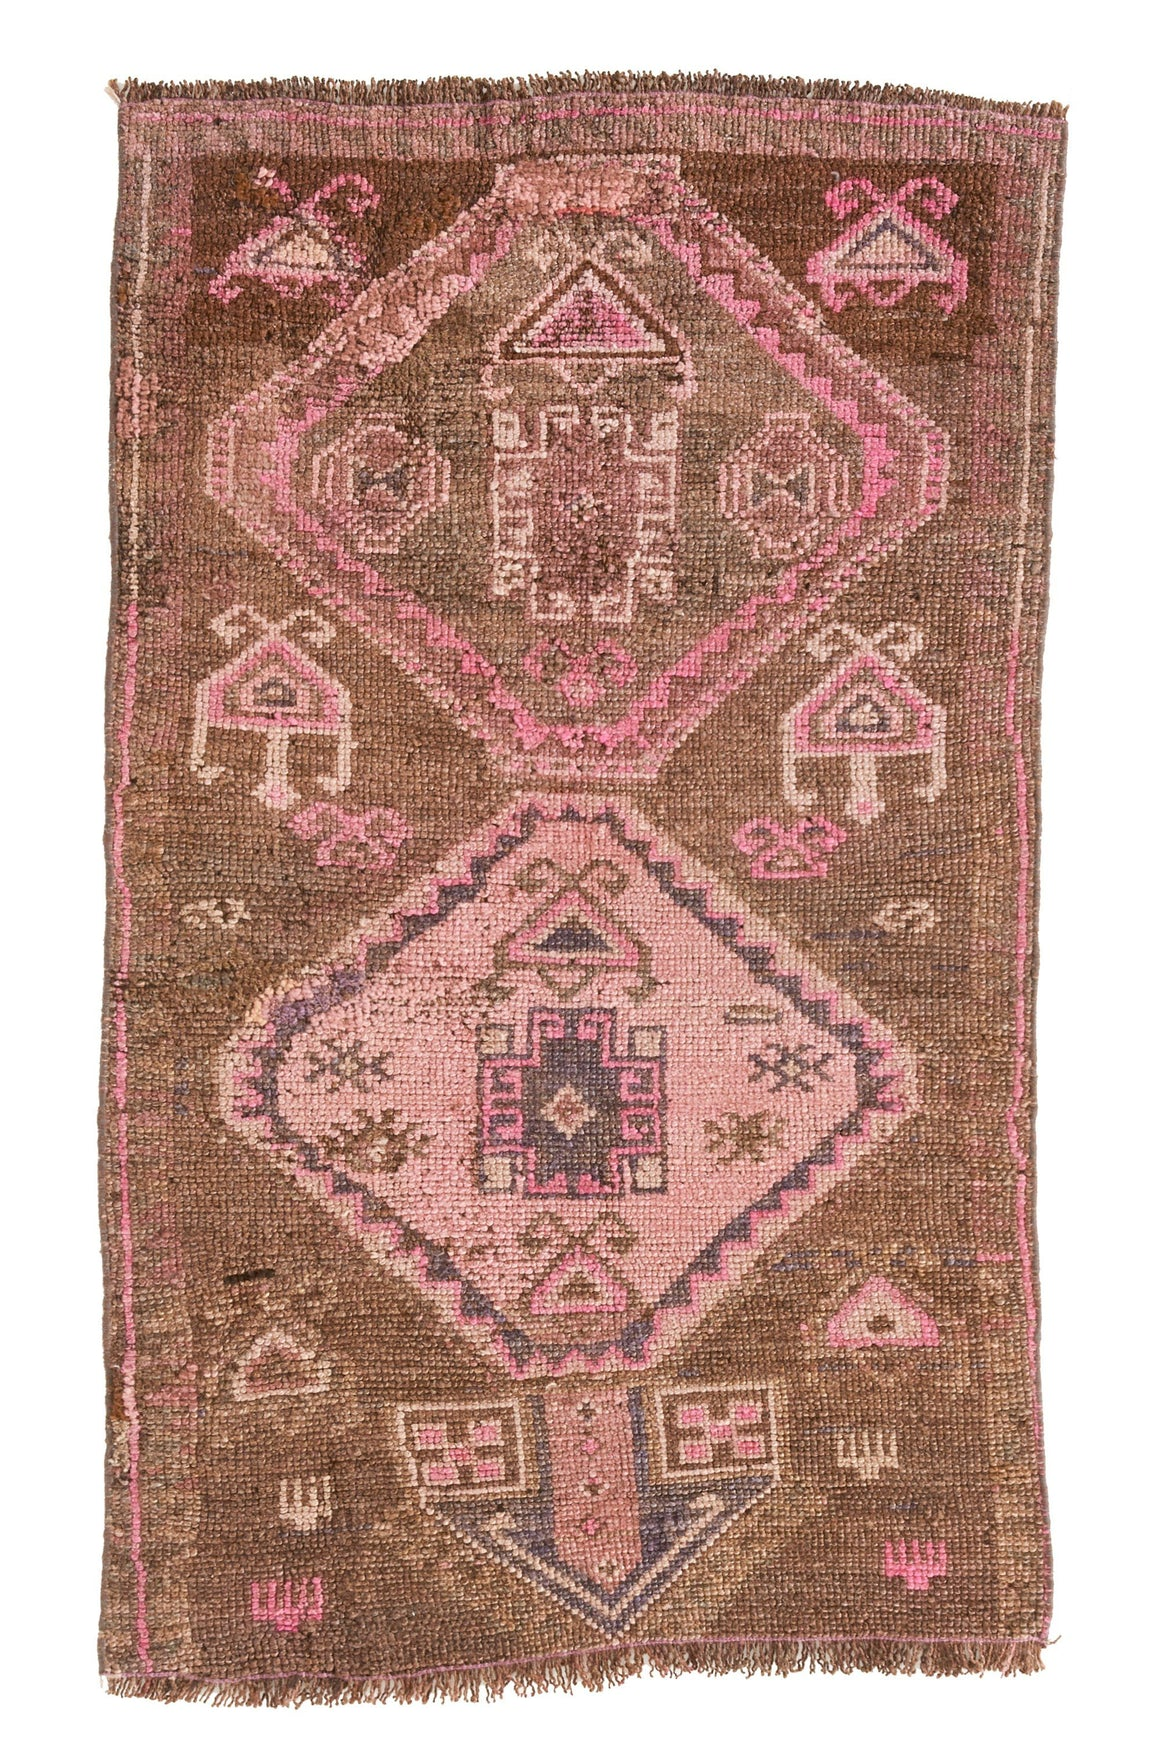 'AC-0818-512' - Small Vintage Turkish Rug - 2'4'' x 4' - Canary Lane - Curated Textiles